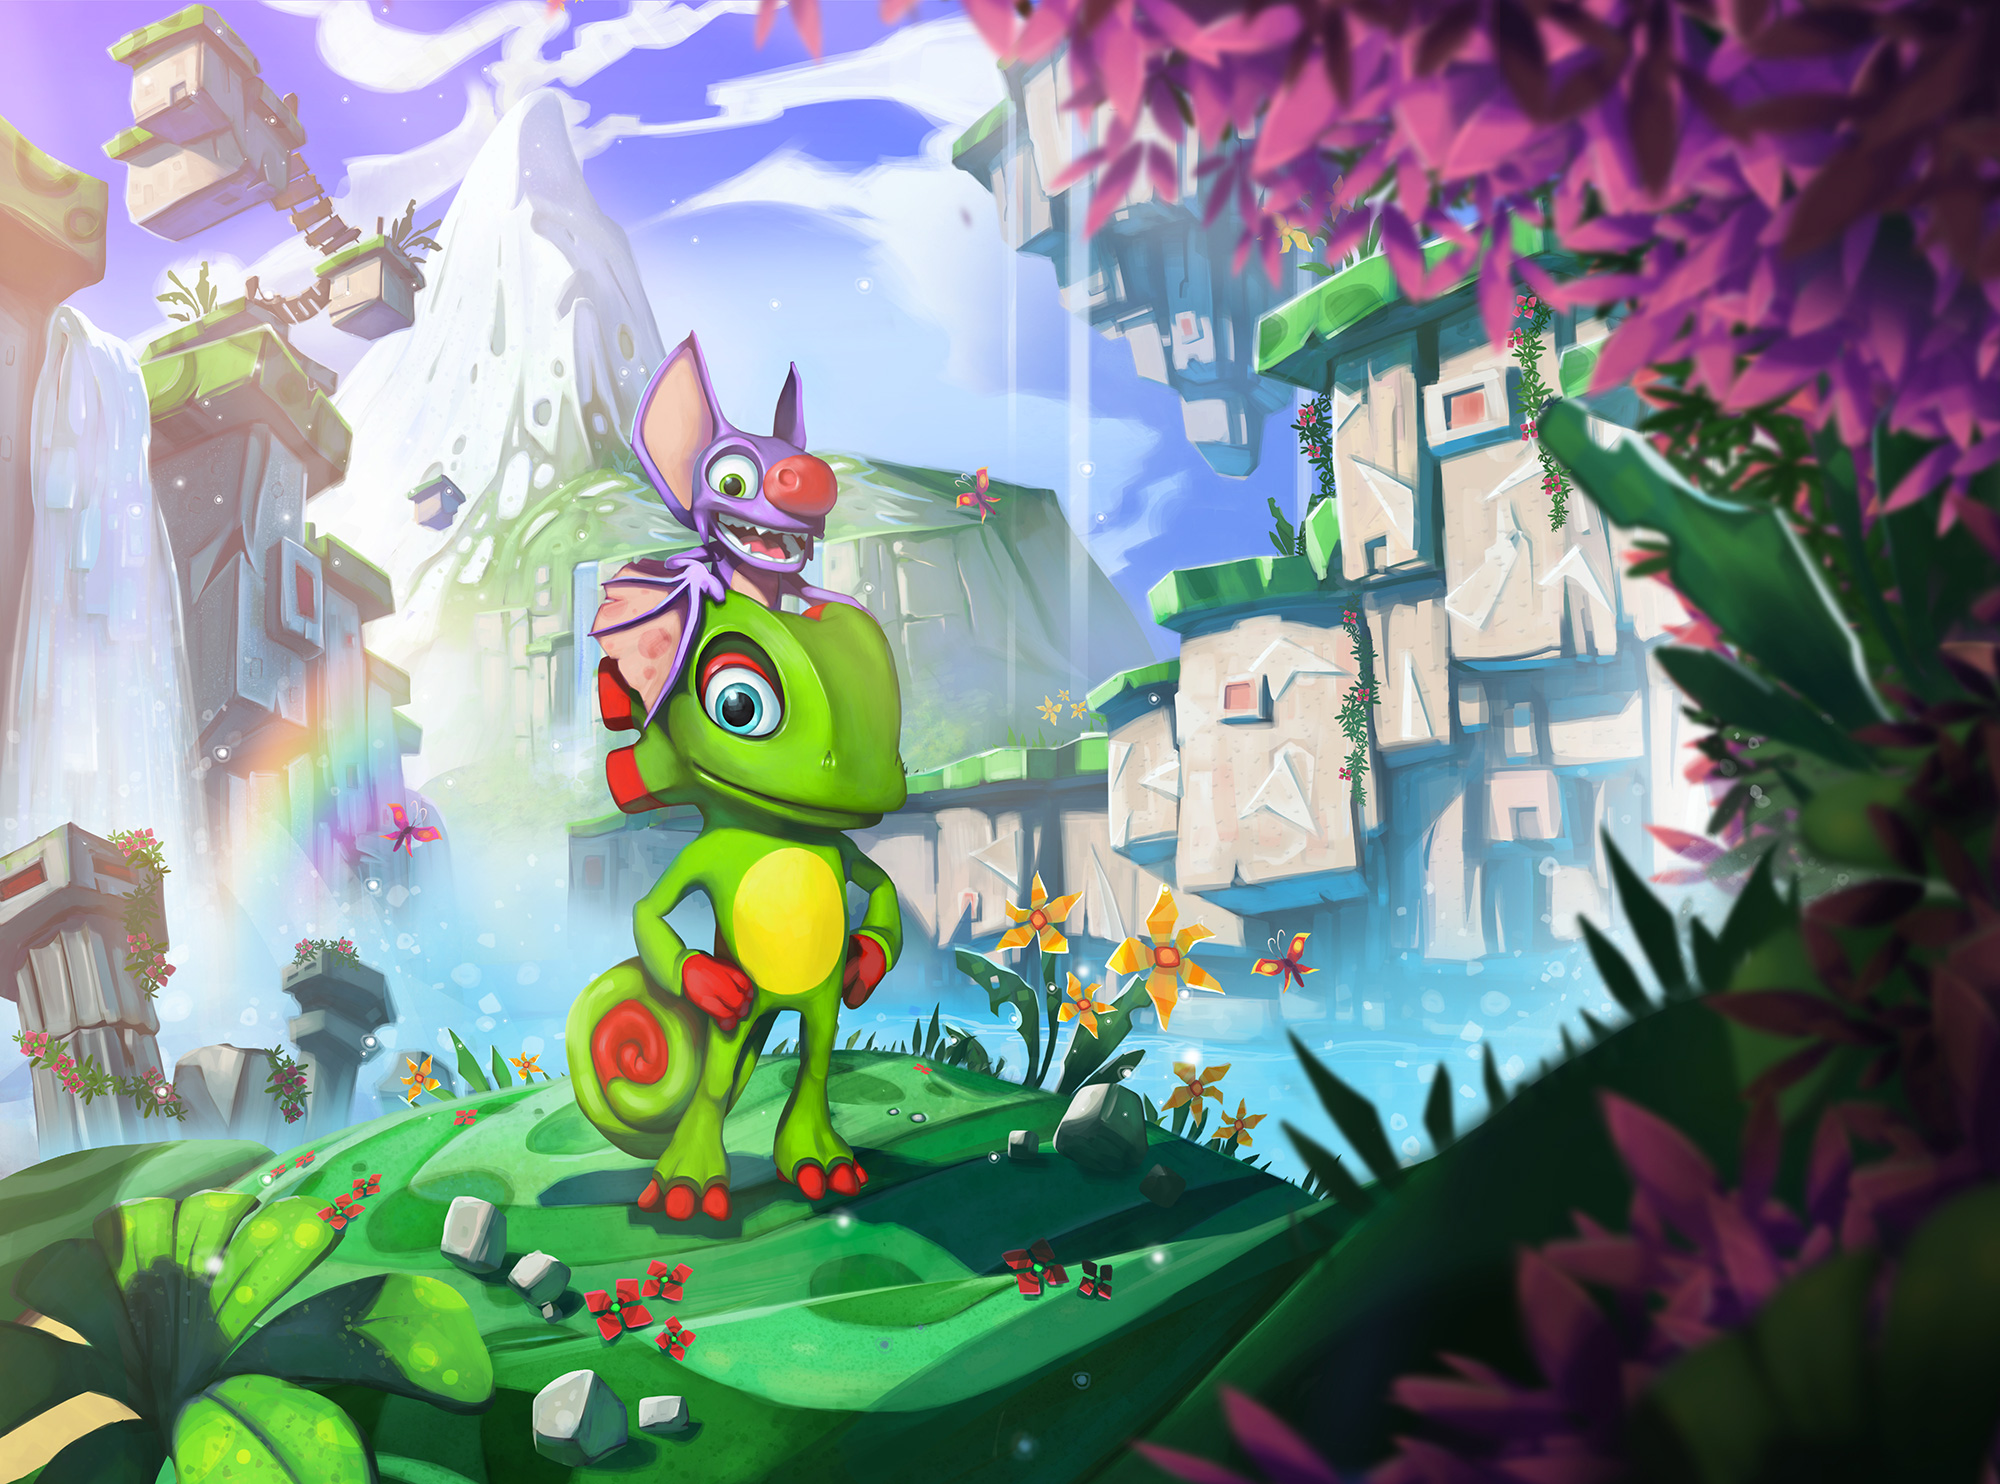 Artwork Yooka-Laylee